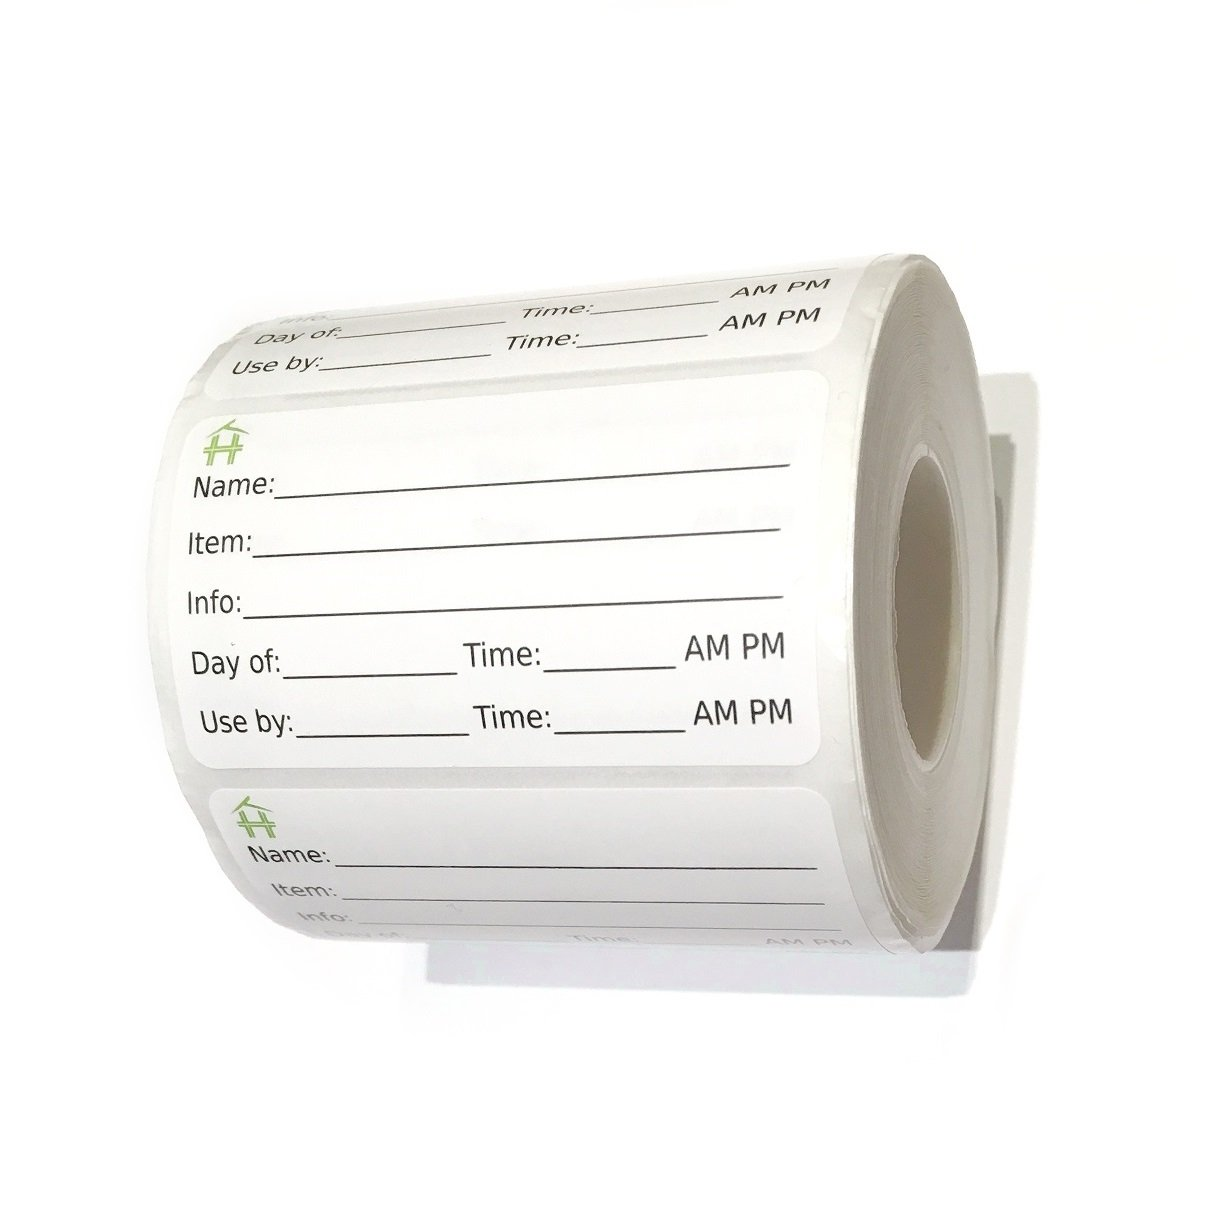 500 Food Labels - Removable Stickers with Large Writable Surface - Peel Clean With No Glue Residue - Great for Meal Preparation, Leftovers Labeling, on Bottles, Pans, Plastic and Other Containers